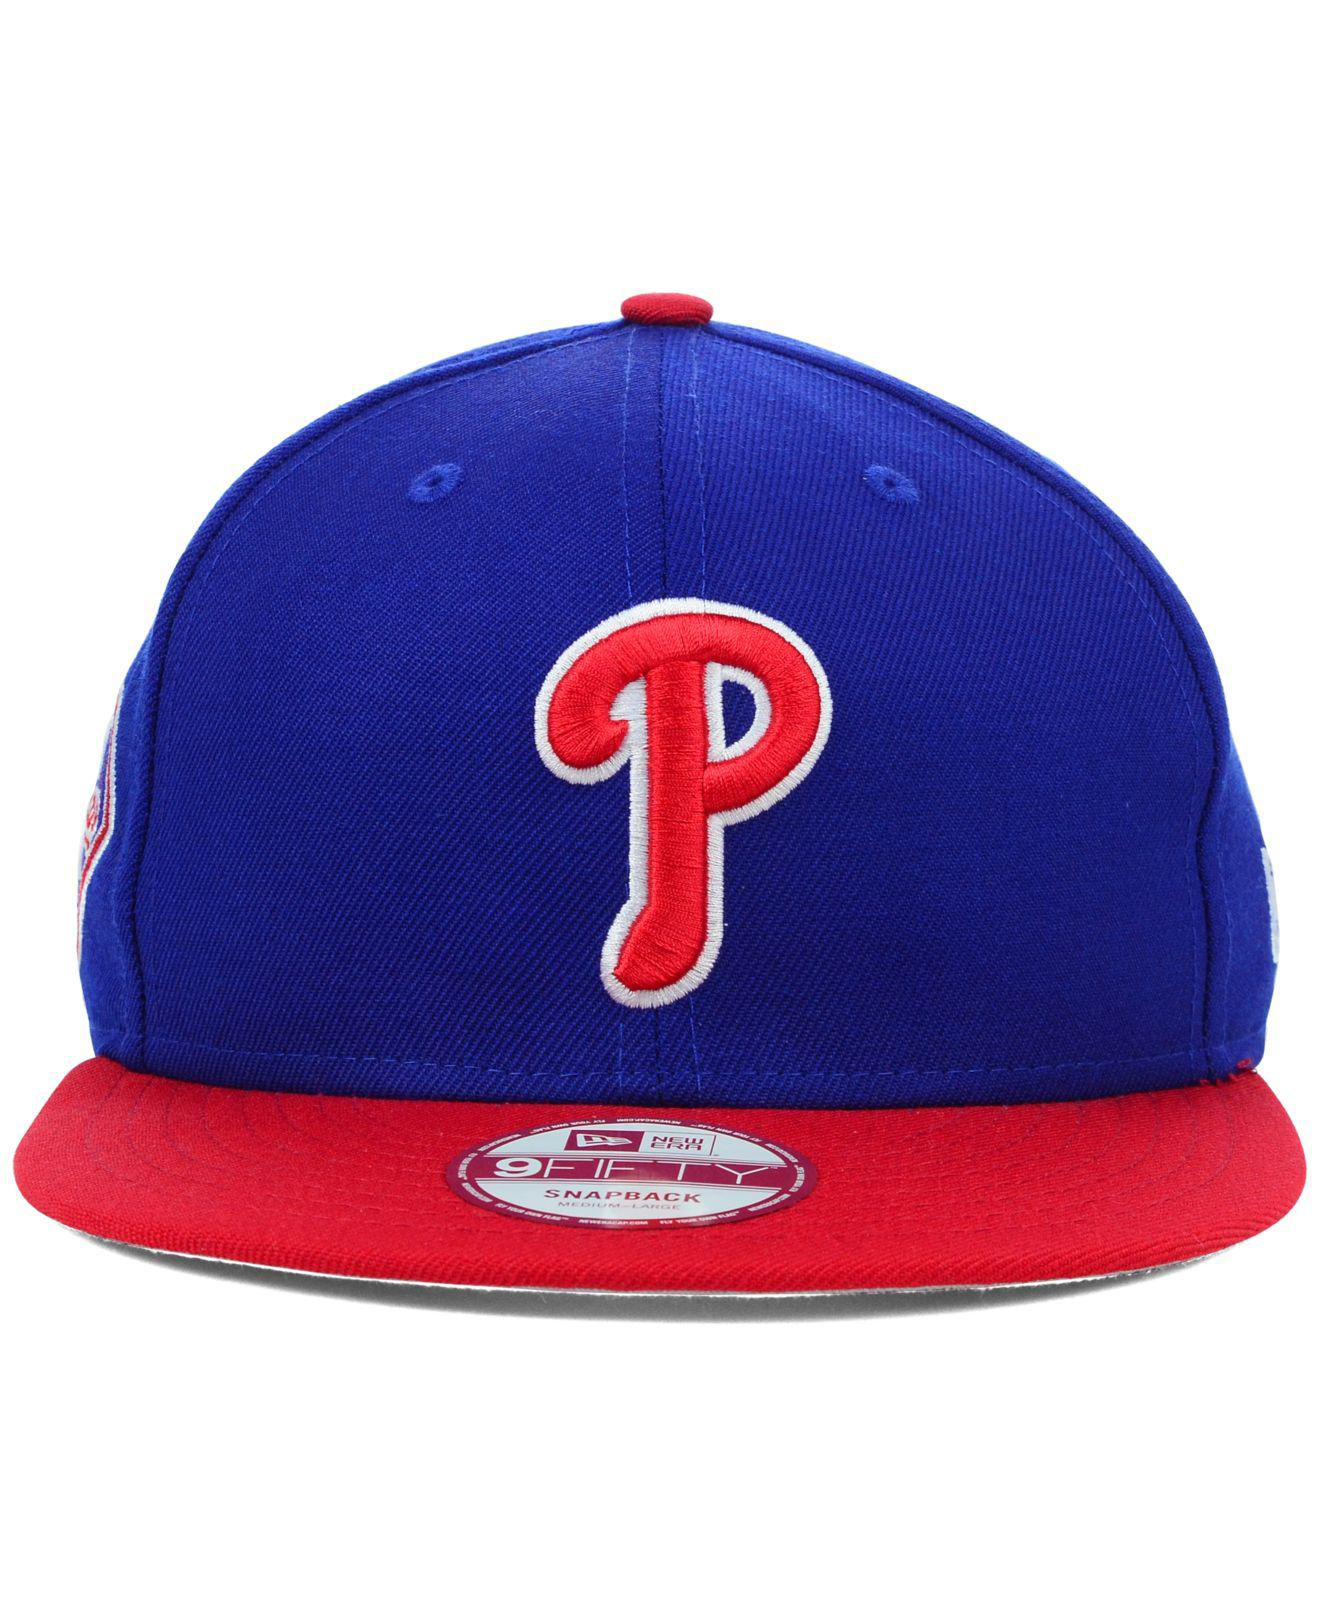 newest 0464c b03f7 ... sweden lyst ktz philadelphia phillies mlb 2 tone link 9fifty snapback  cap in blue for men ...